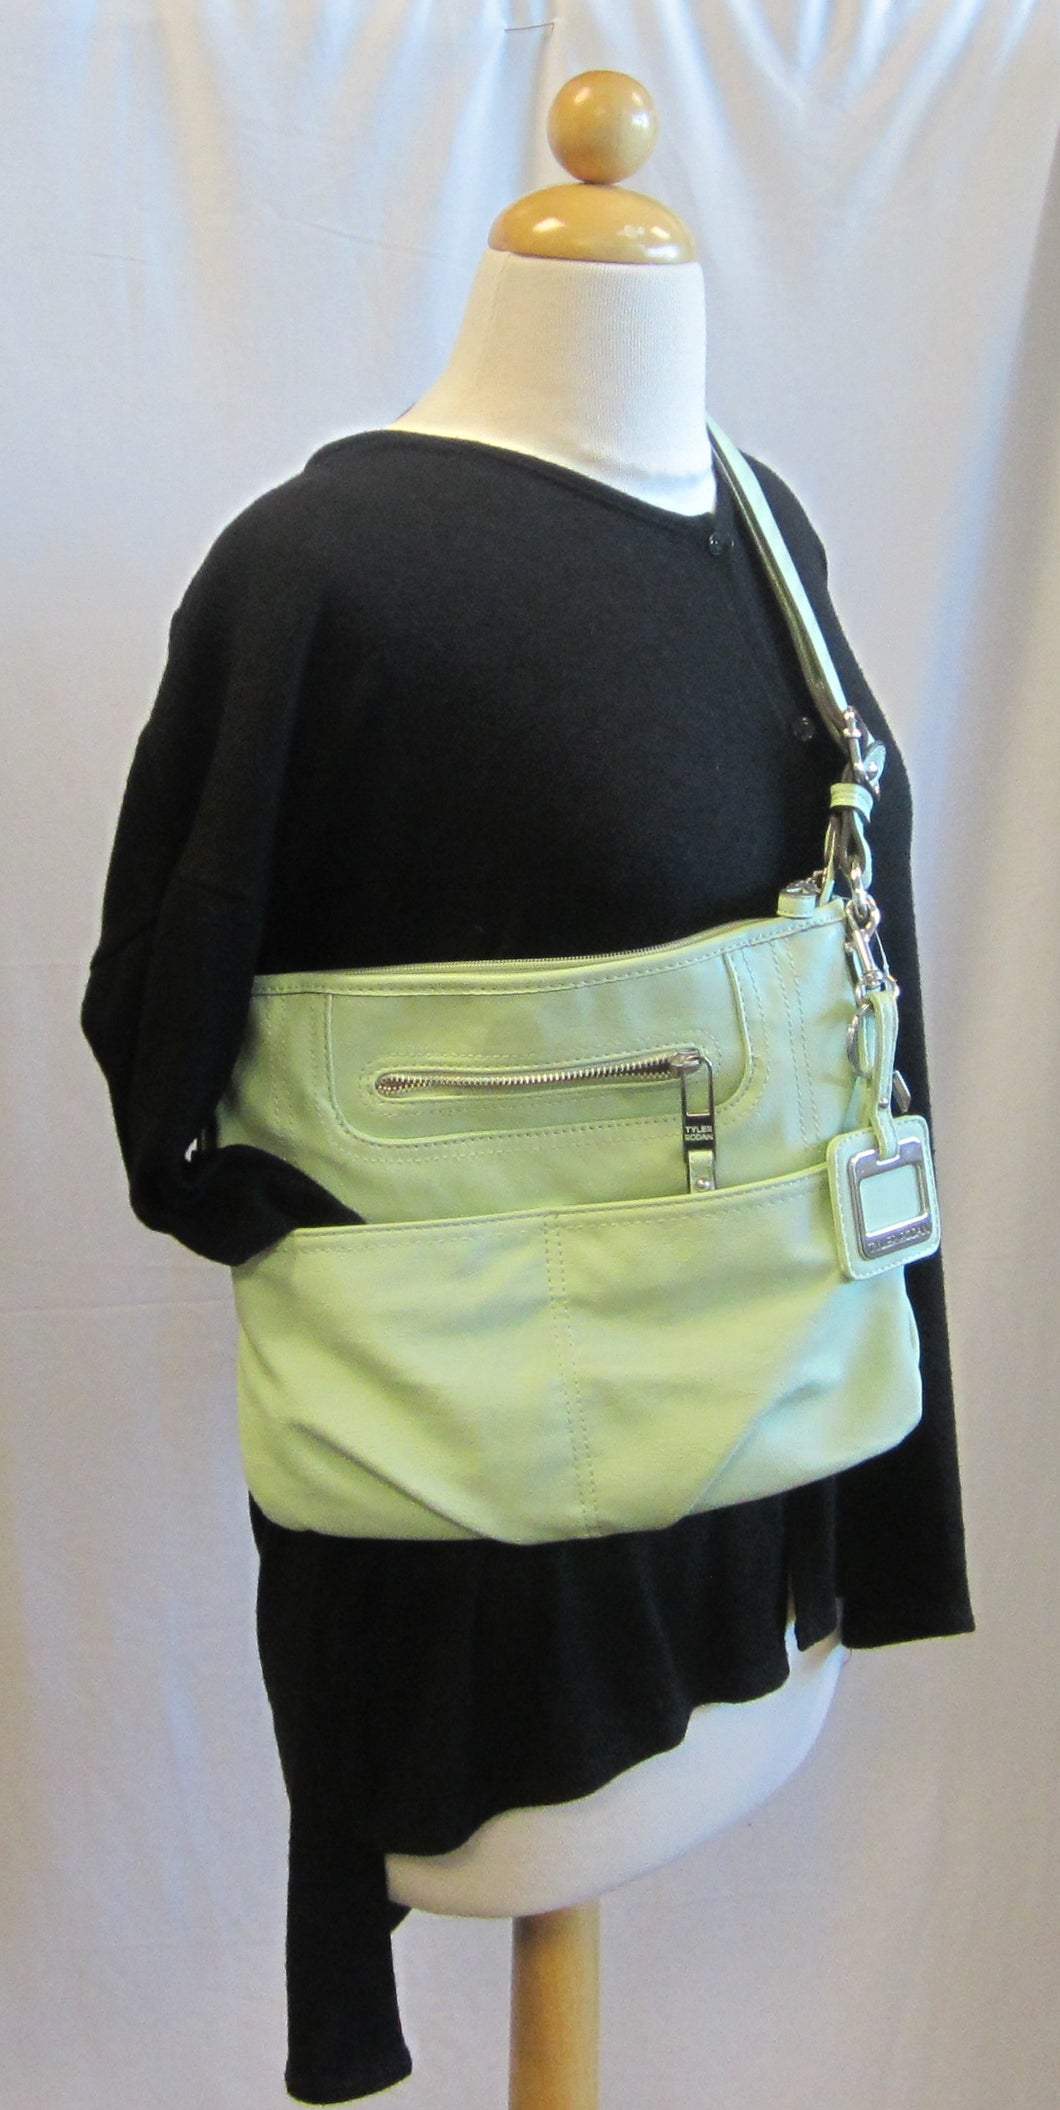 Purse         Lime Green                                                                    12/16Cab